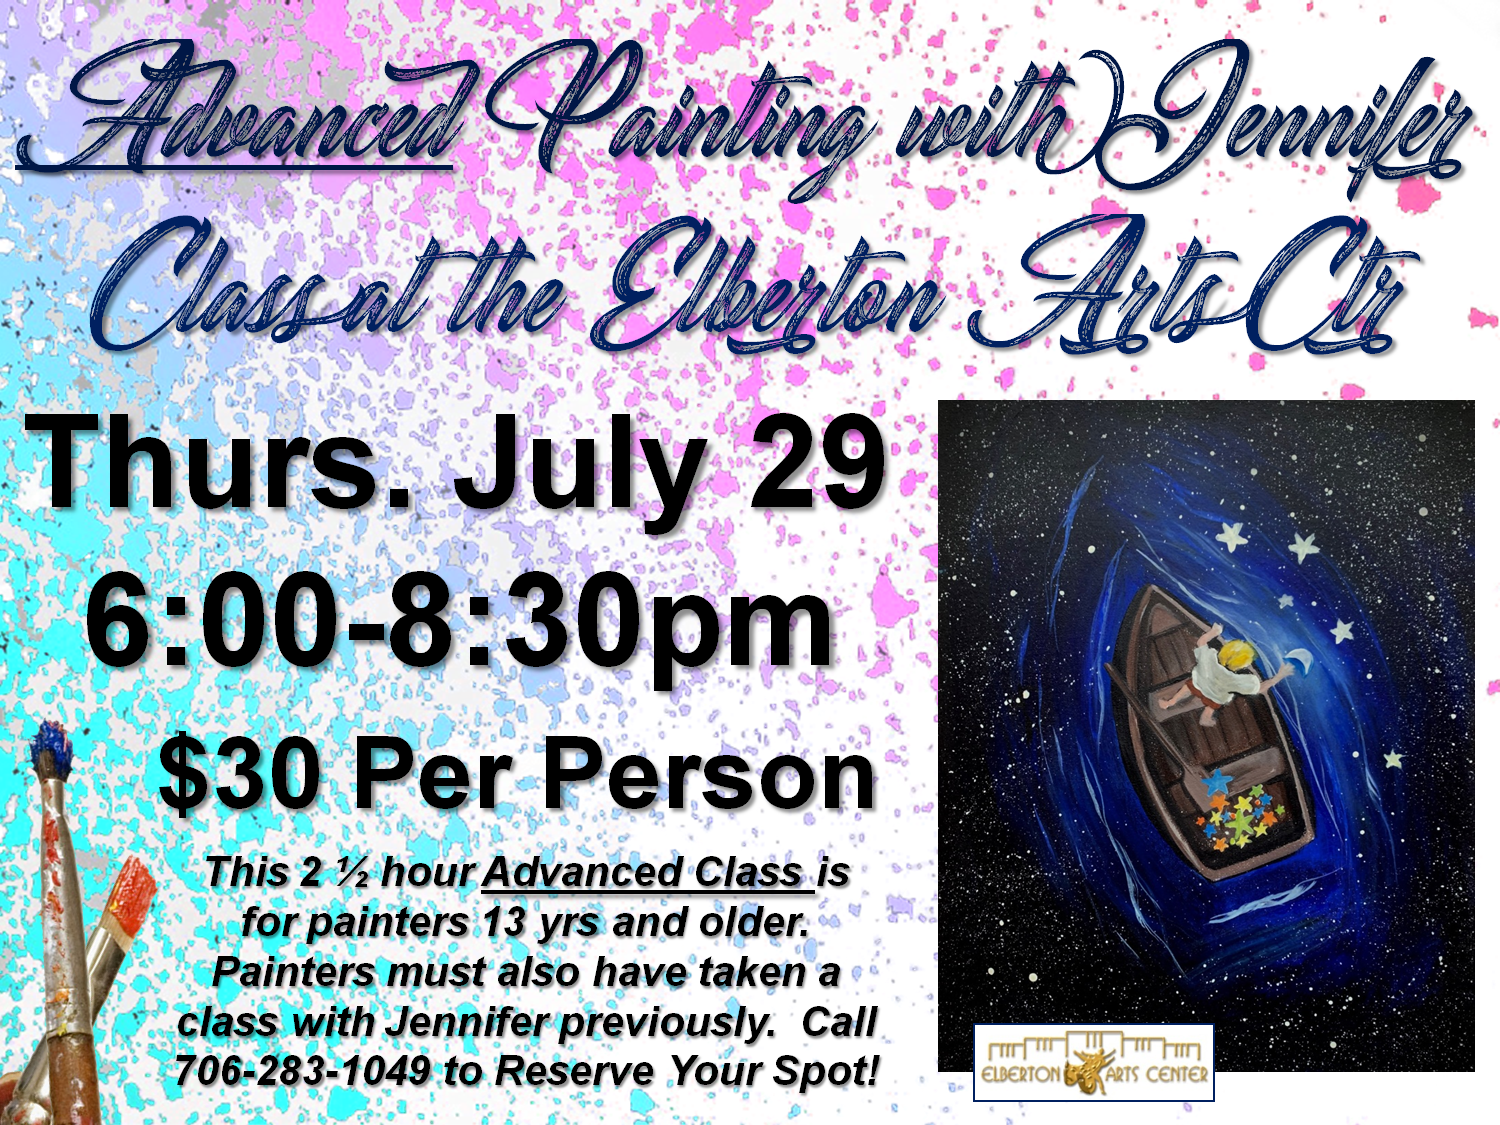 Painting with Jennifer Thurs July 29